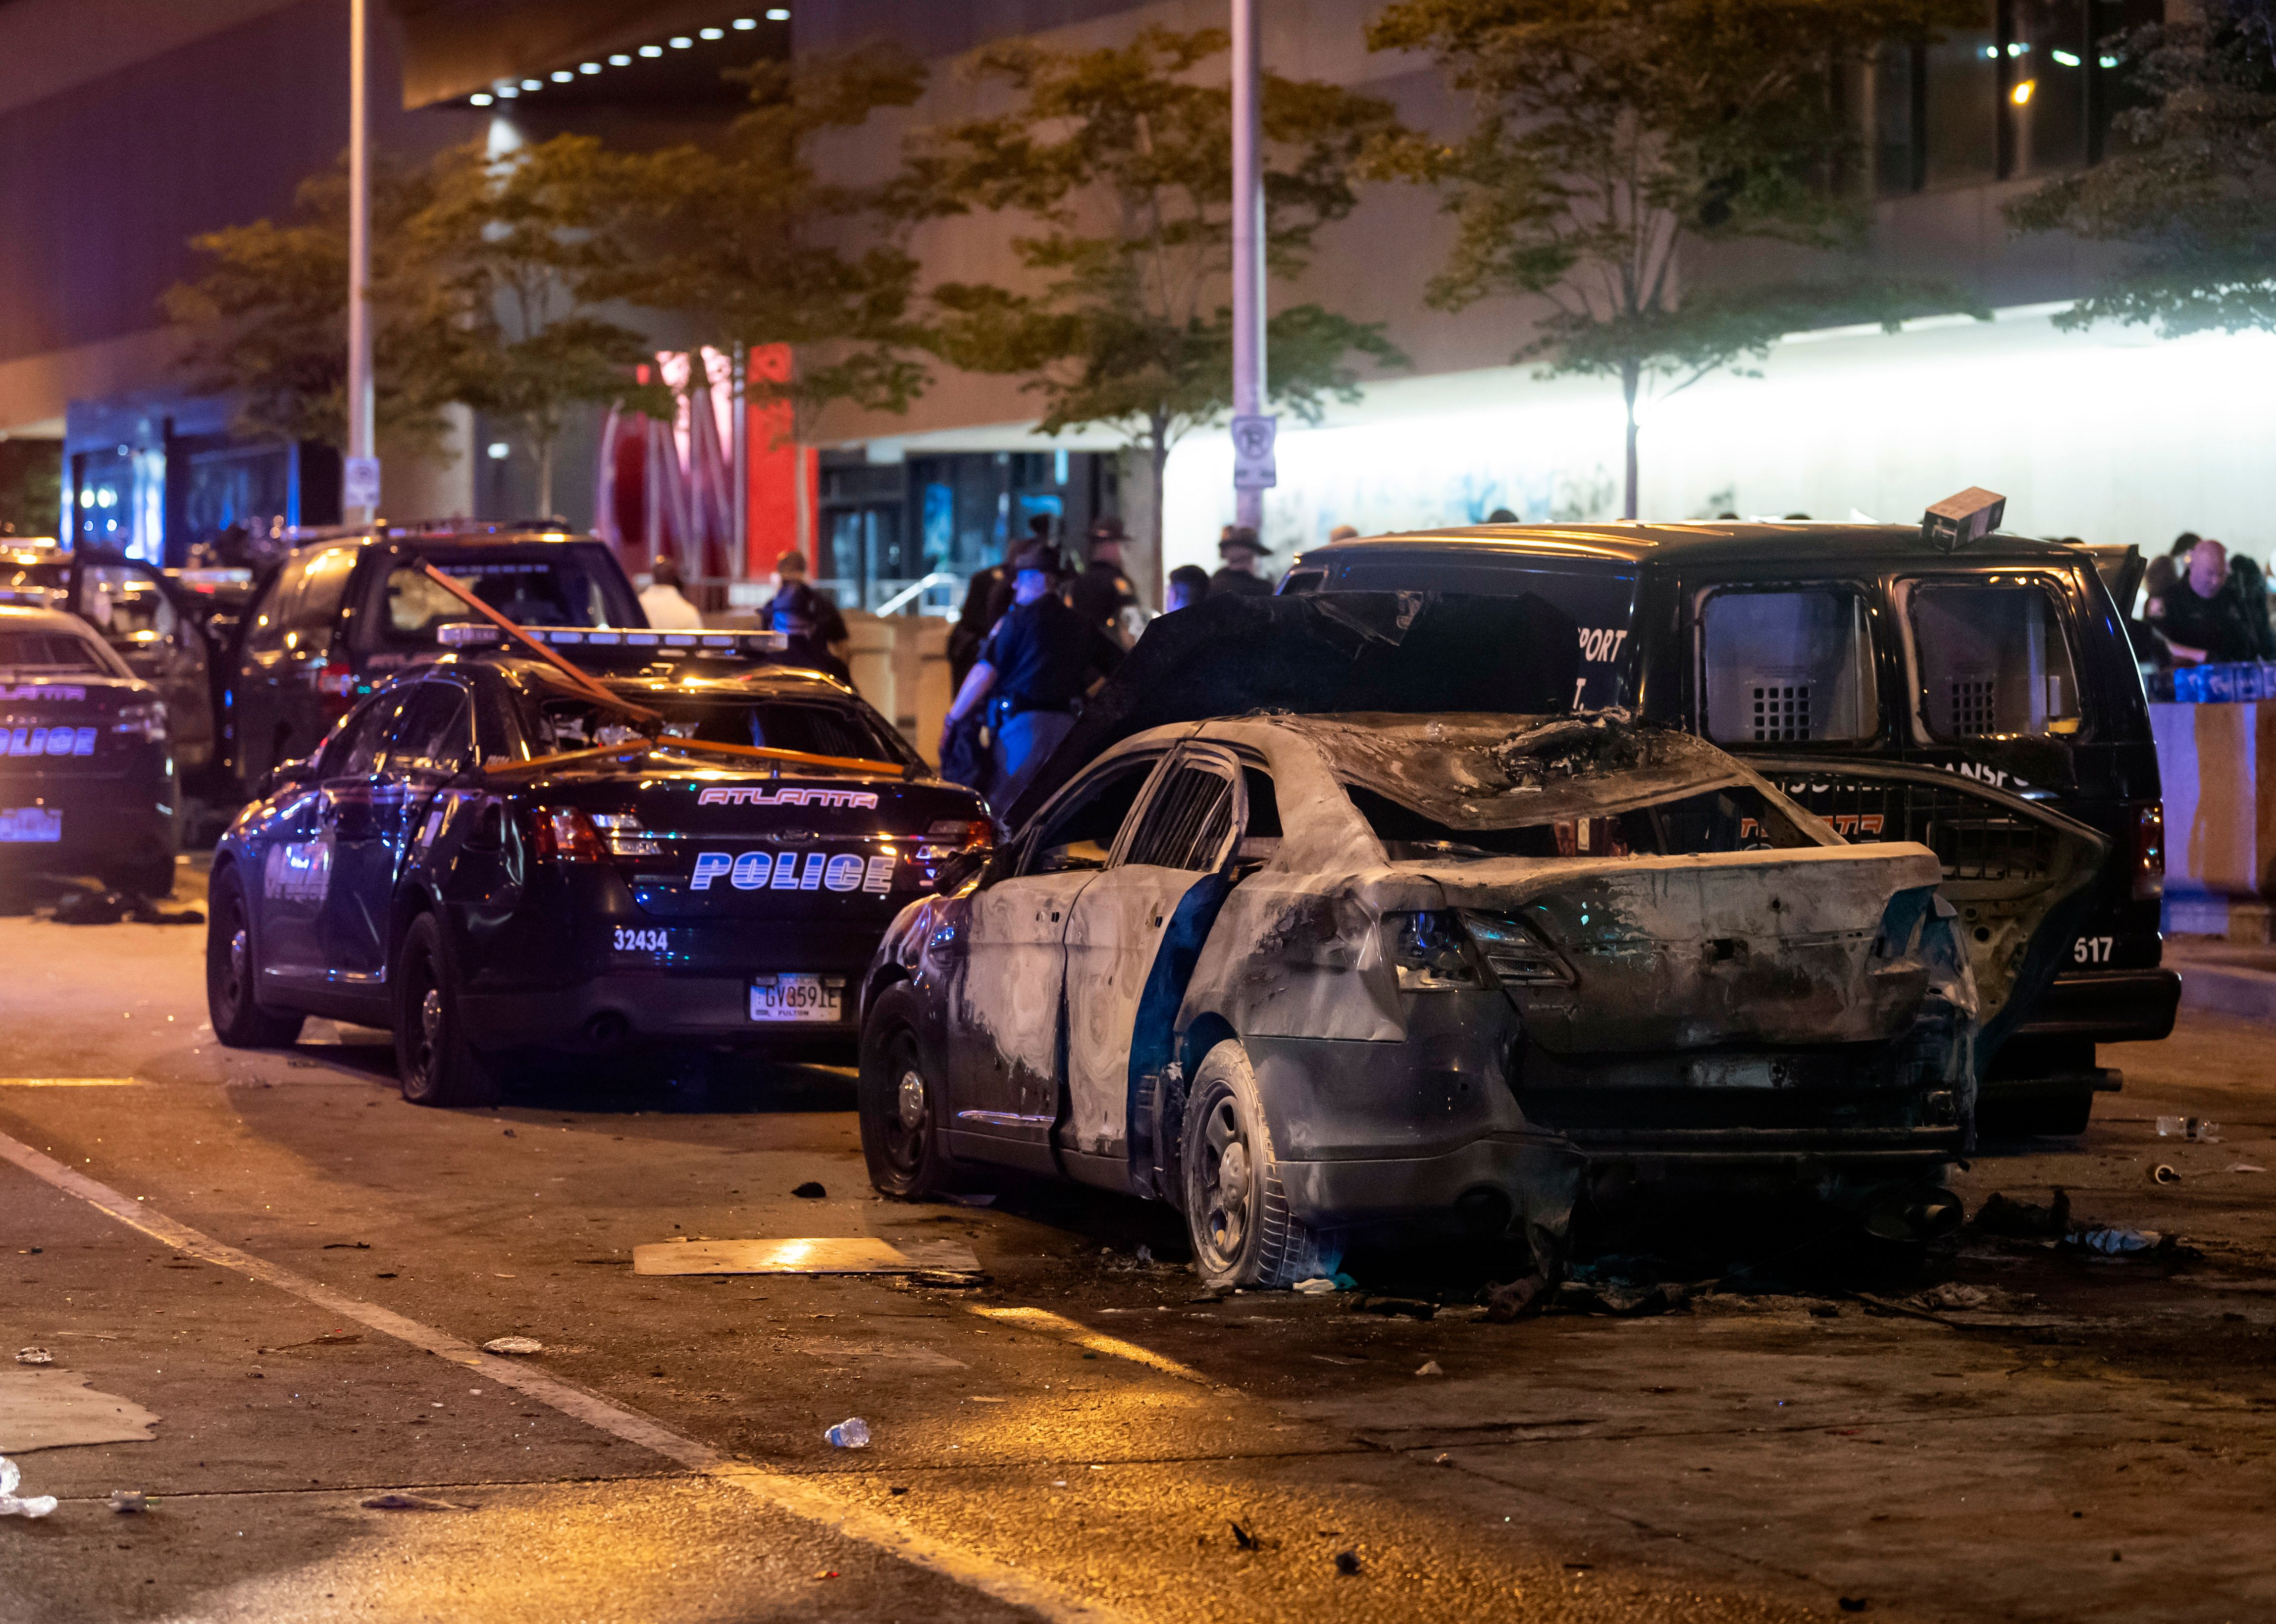 A burned out car sits idle during rioting and protests in Atlanta on May 29, 2020. (Photo by JOHN AMIS/AFP via Getty Images)